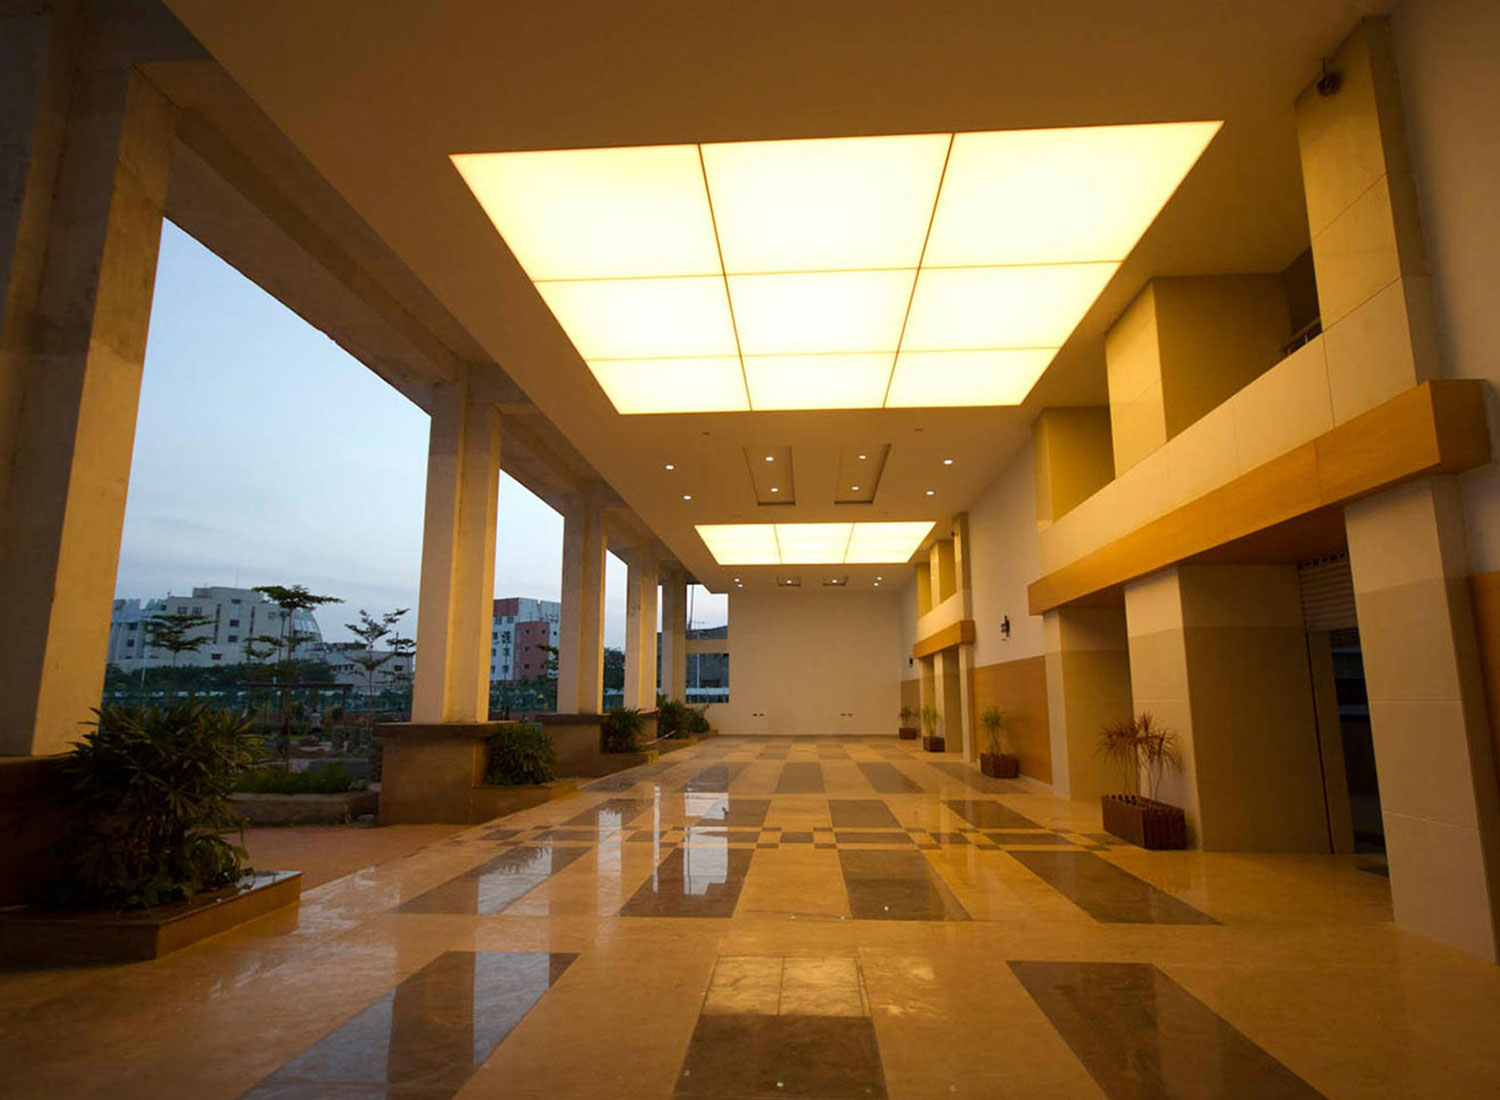 VIT - Stretch Ceiling Translucent with Backlighting in Institution - Institution - Vellore